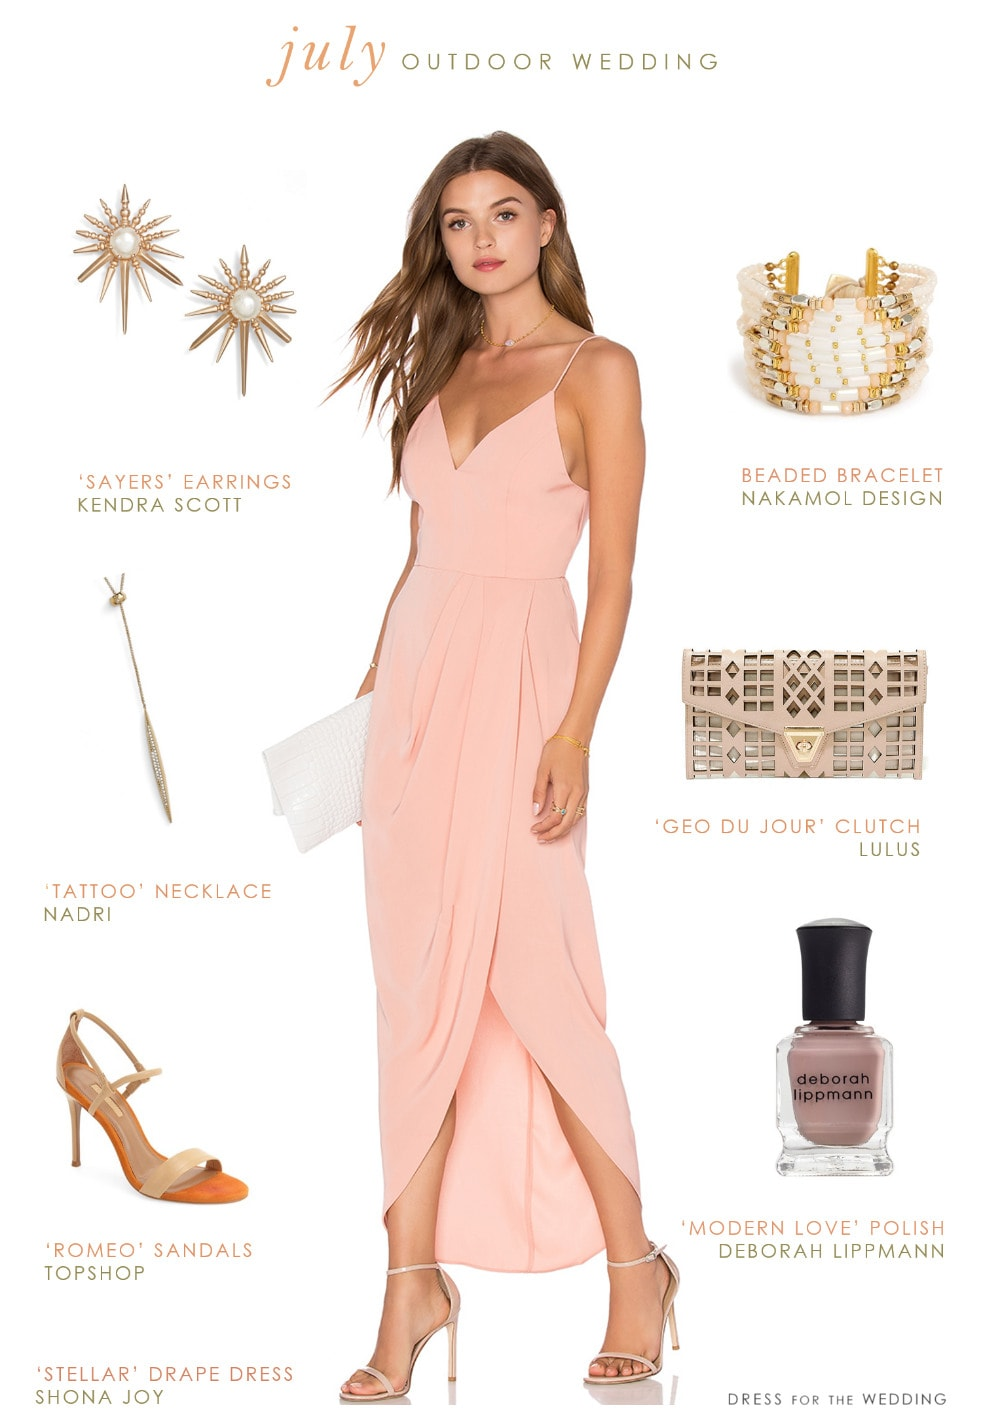 What to Wear to an Outdoor July Wedding | Wedding Guest Outfits 2016